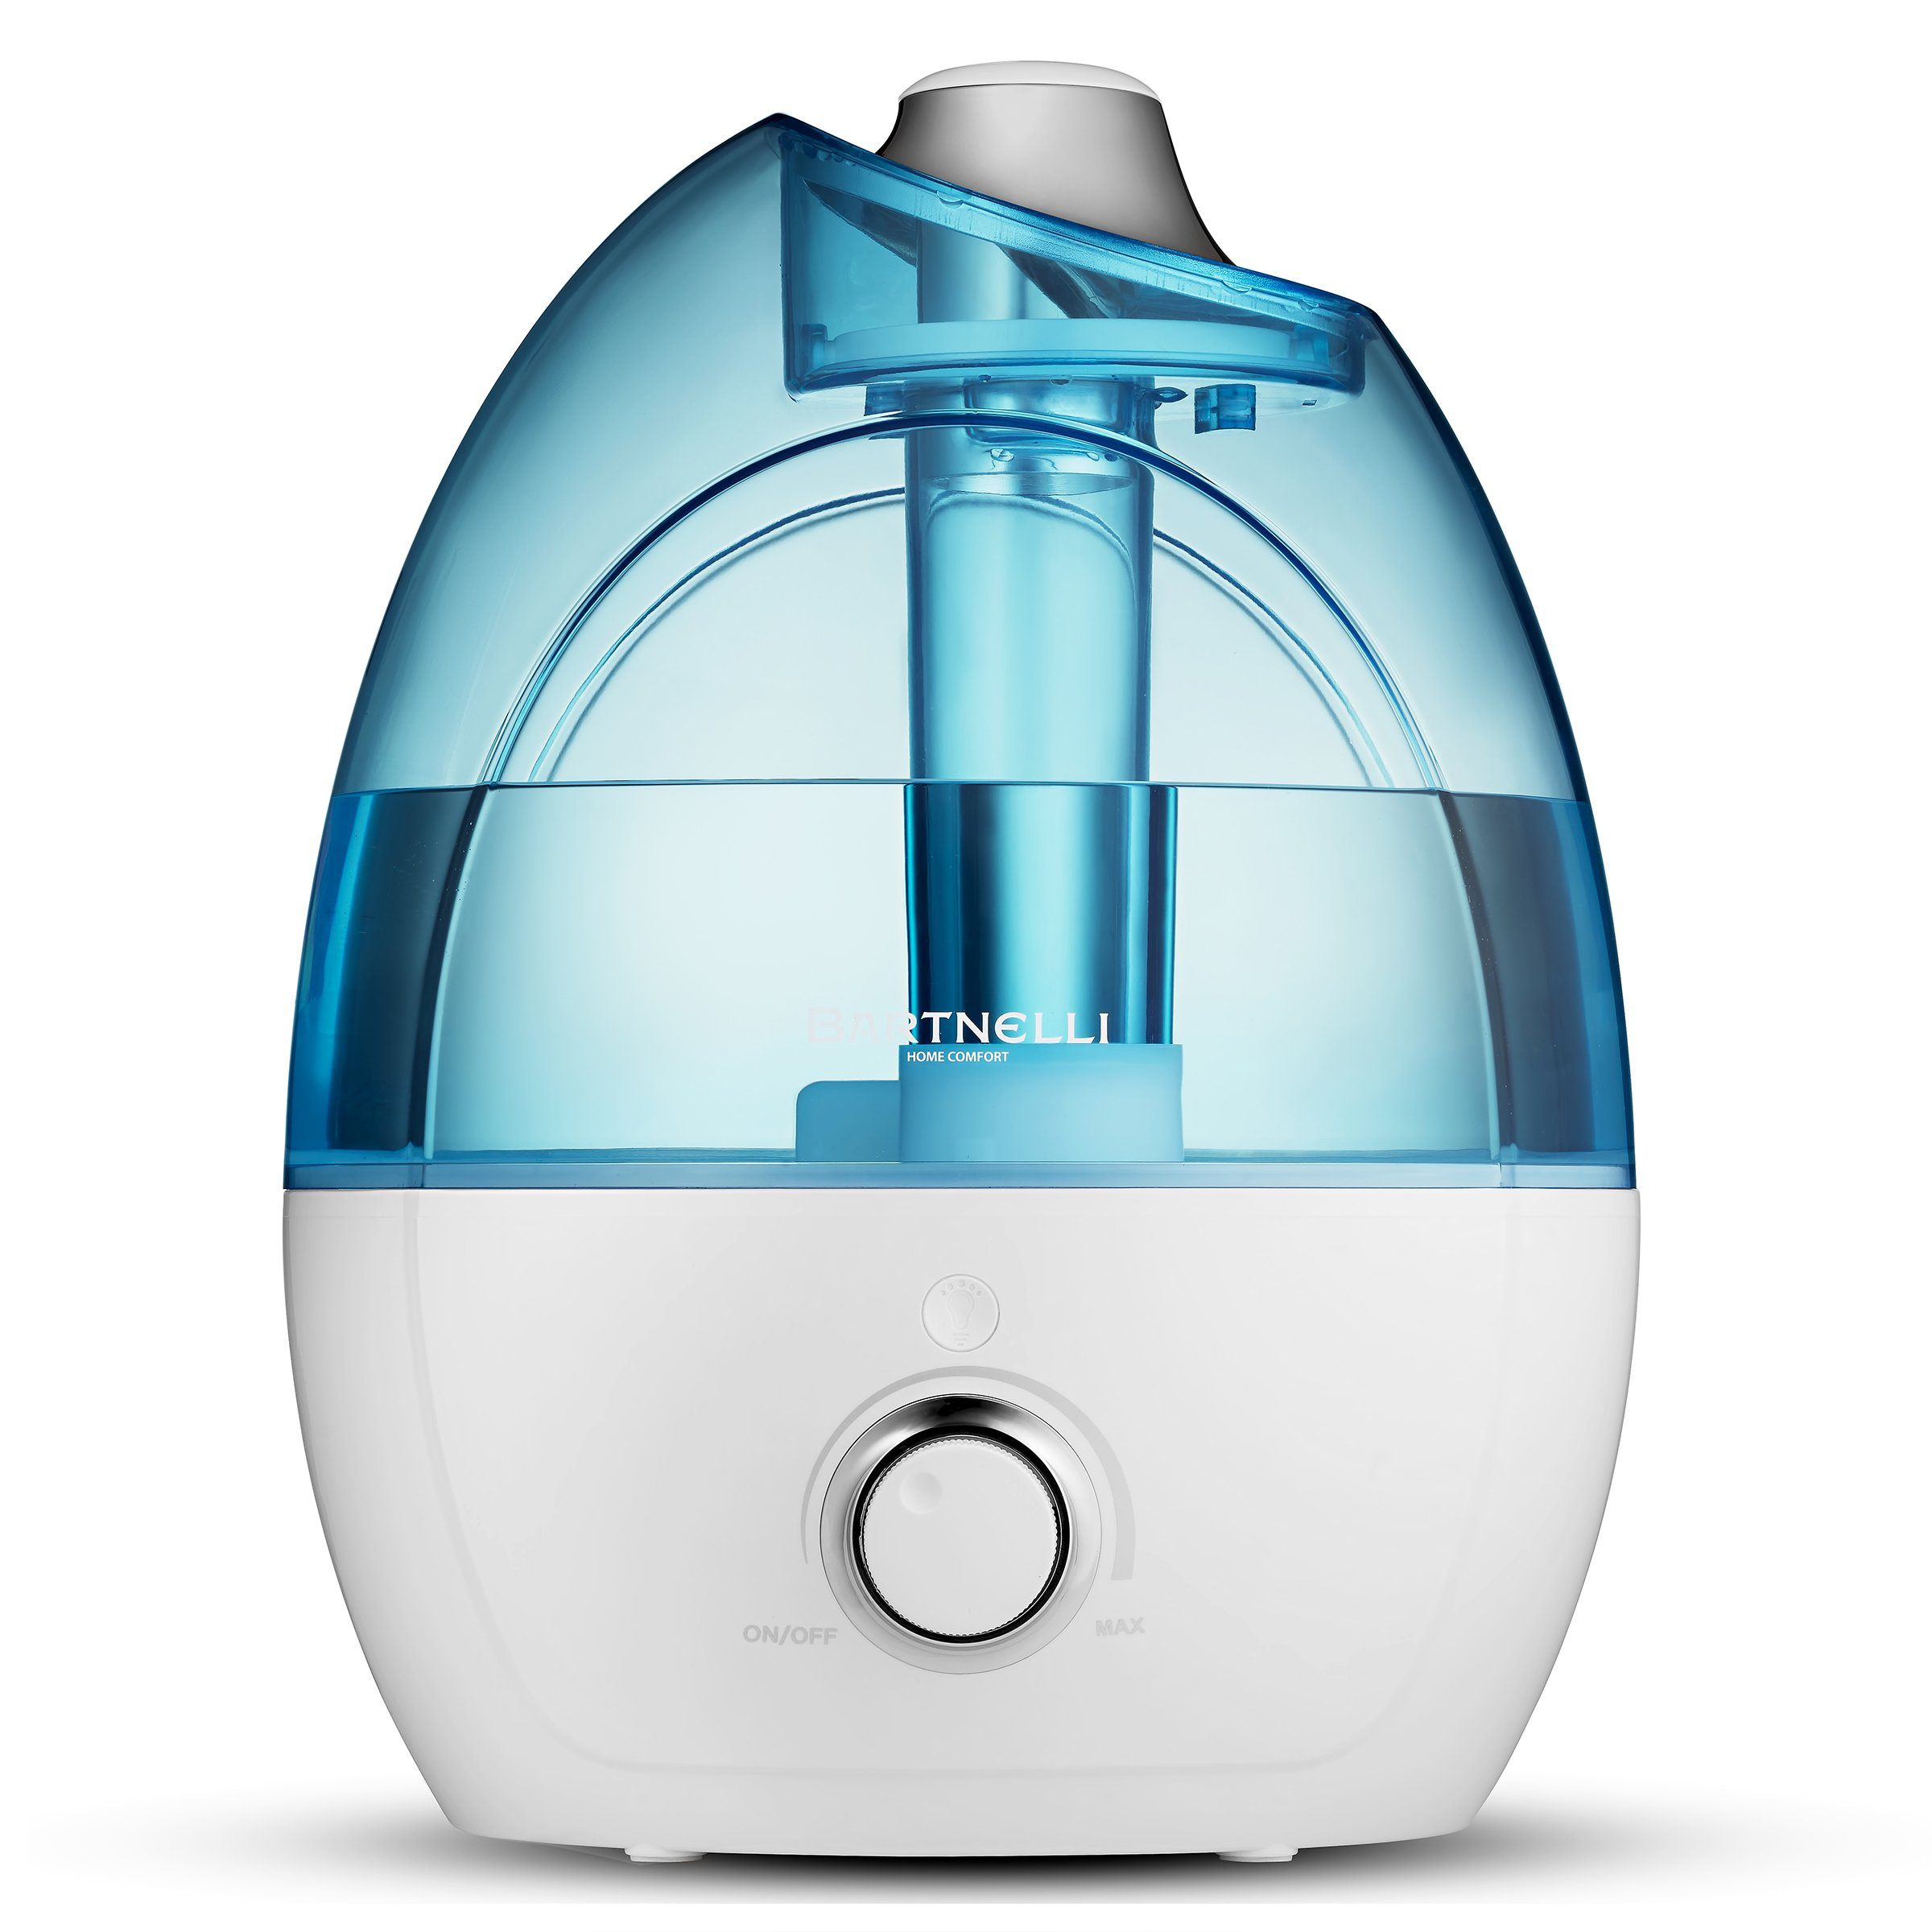 Bartnelli Ultrasonic Cool Mist Humidifier with Ultra-Quiet Operation – 3.5L Tank for Water – 360° Mist Nozzle - Automatic Shut Off – Certified Safety – 7 Color Night Light